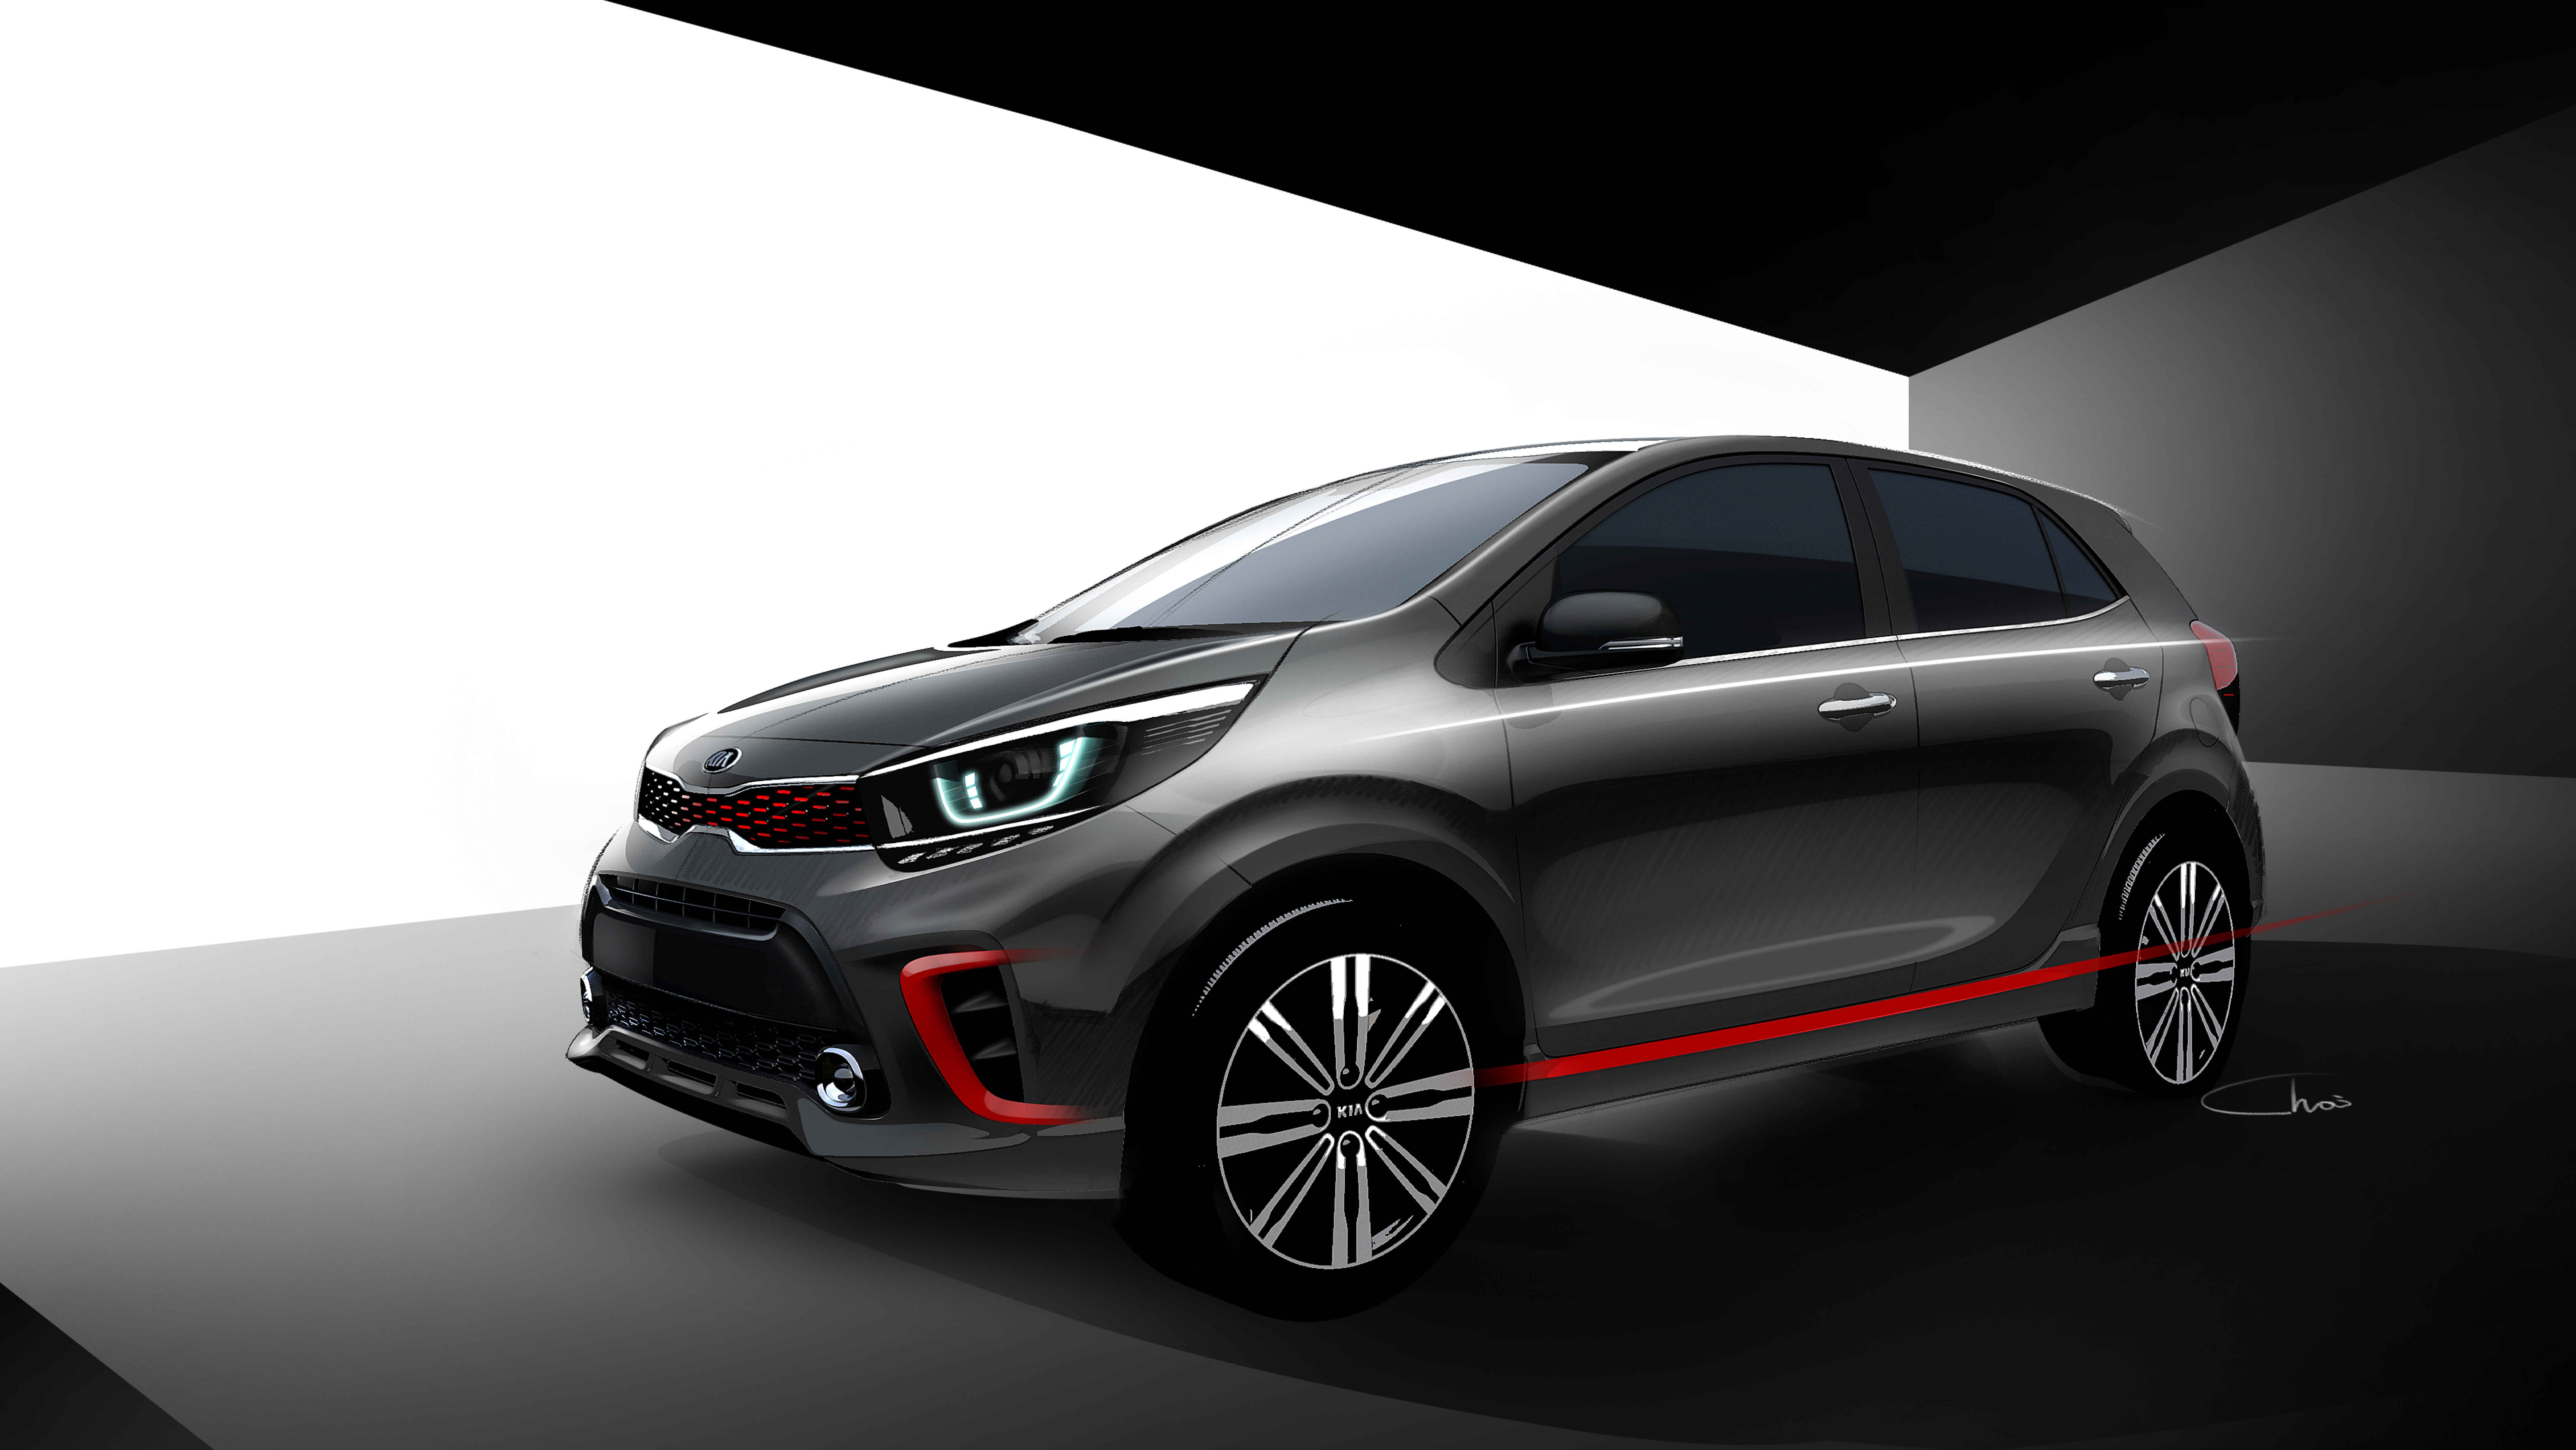 KIA Motors unveils the rendered images of the latest model